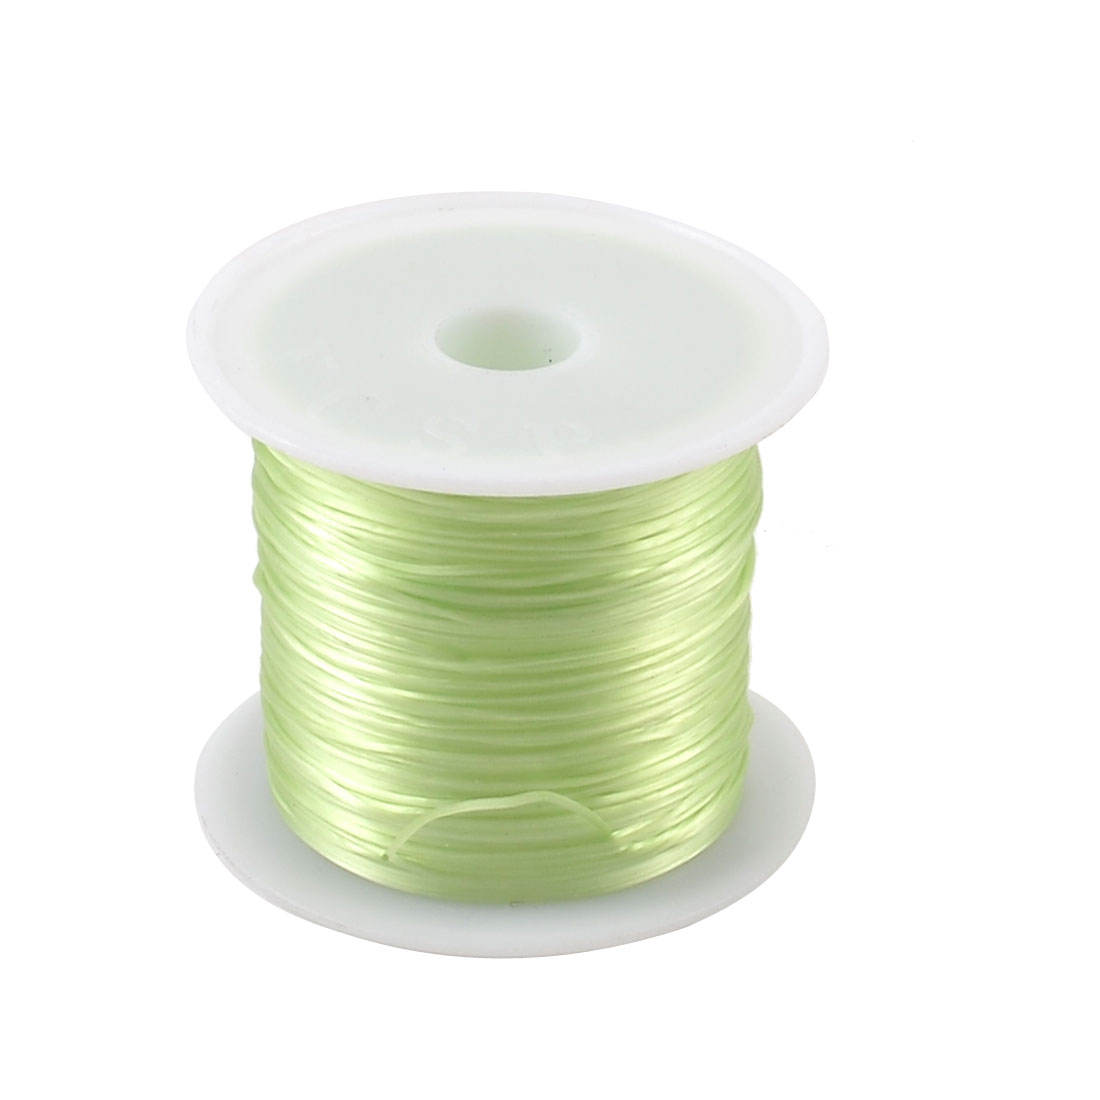 8.5M Long Light Green Elastic Crystal String Cord Jewelry Beading Thread